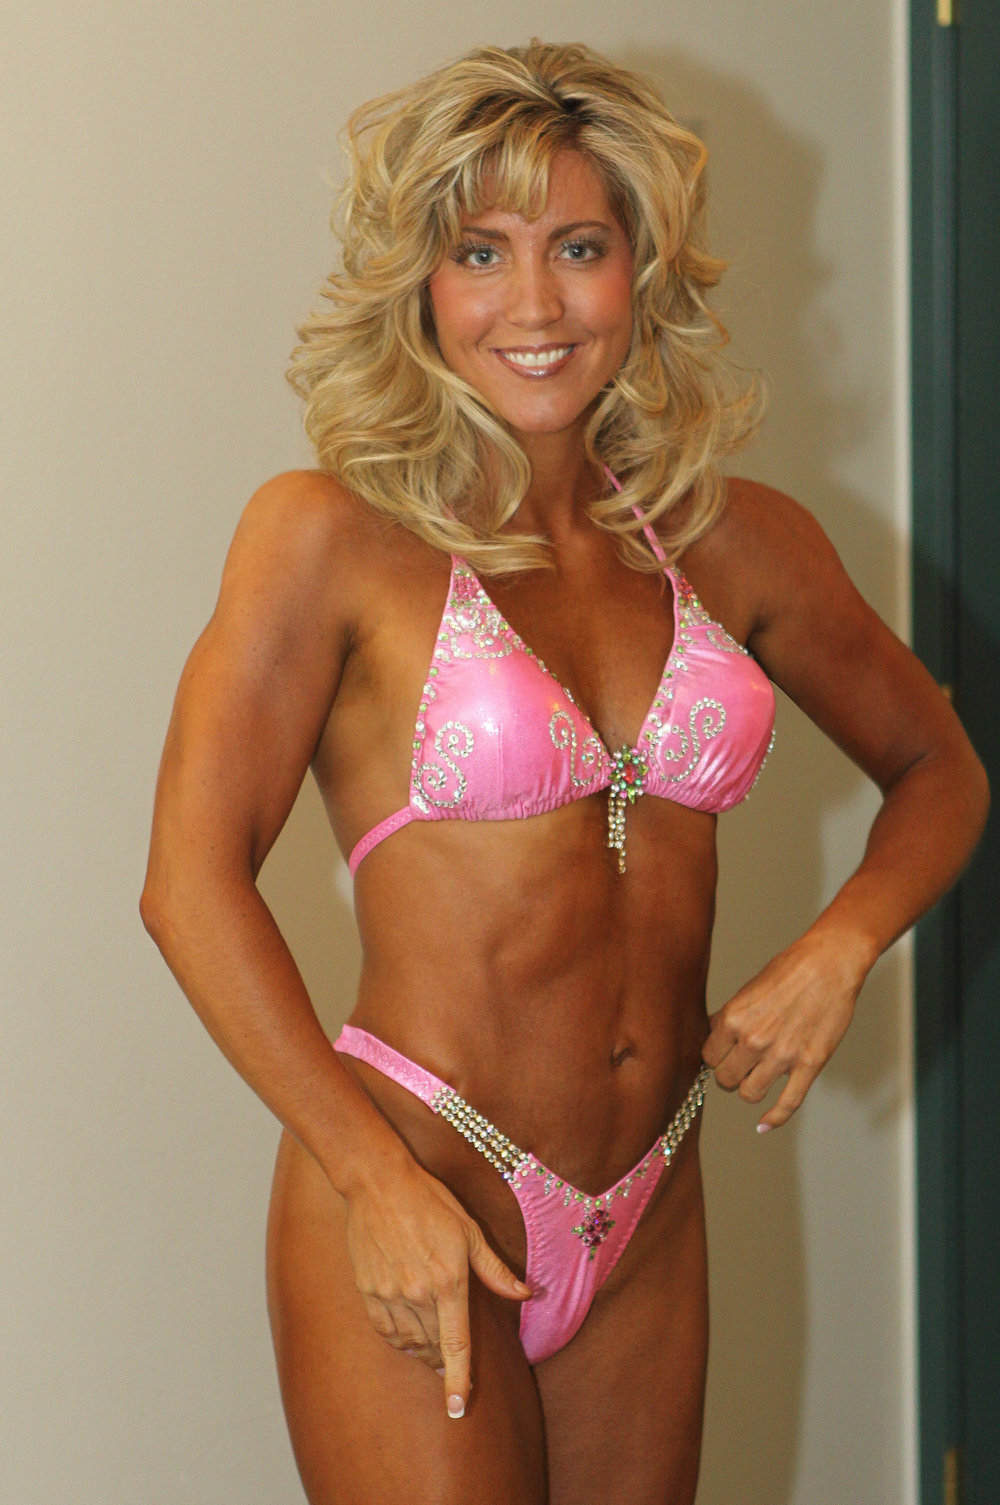 Alicia competed in the division between bikini class (less muscular) and bodybuilding class (more muscular).